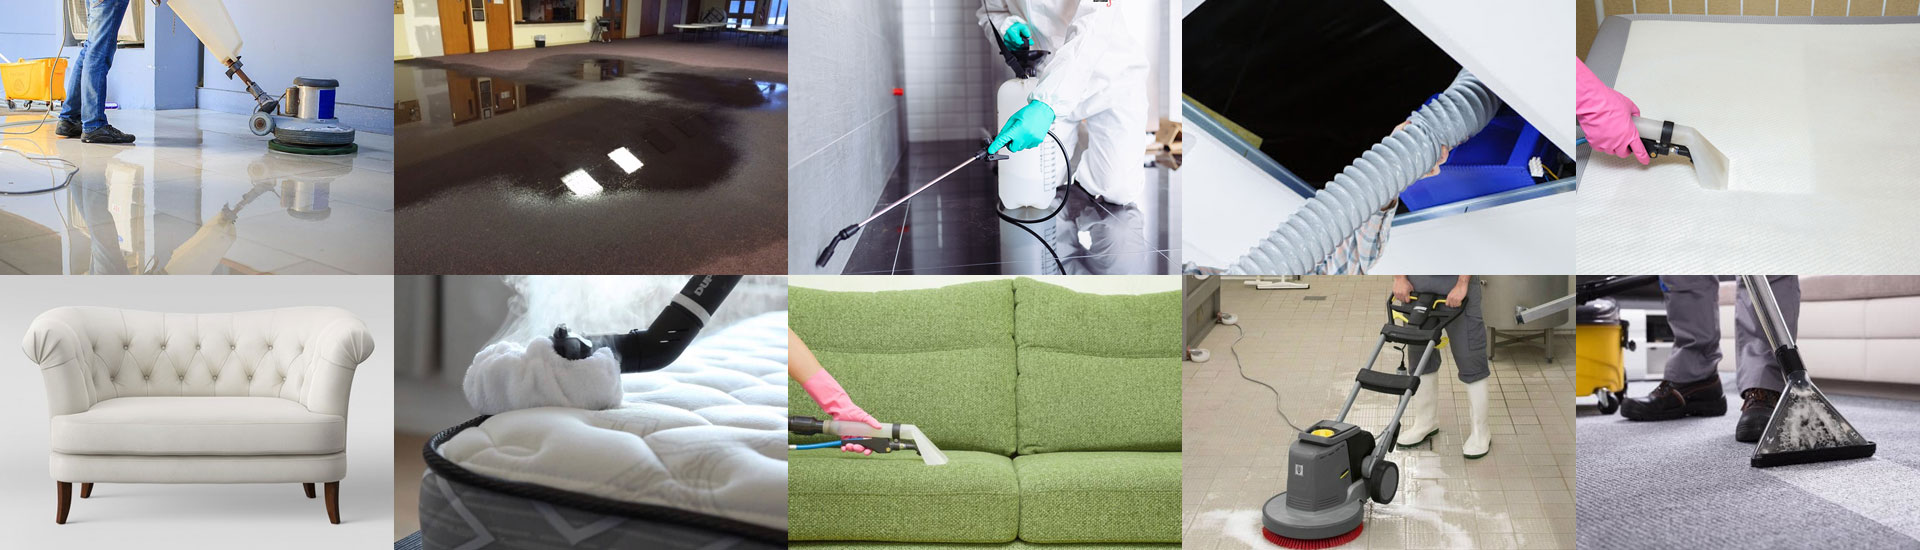 Vanish Cleaning Services